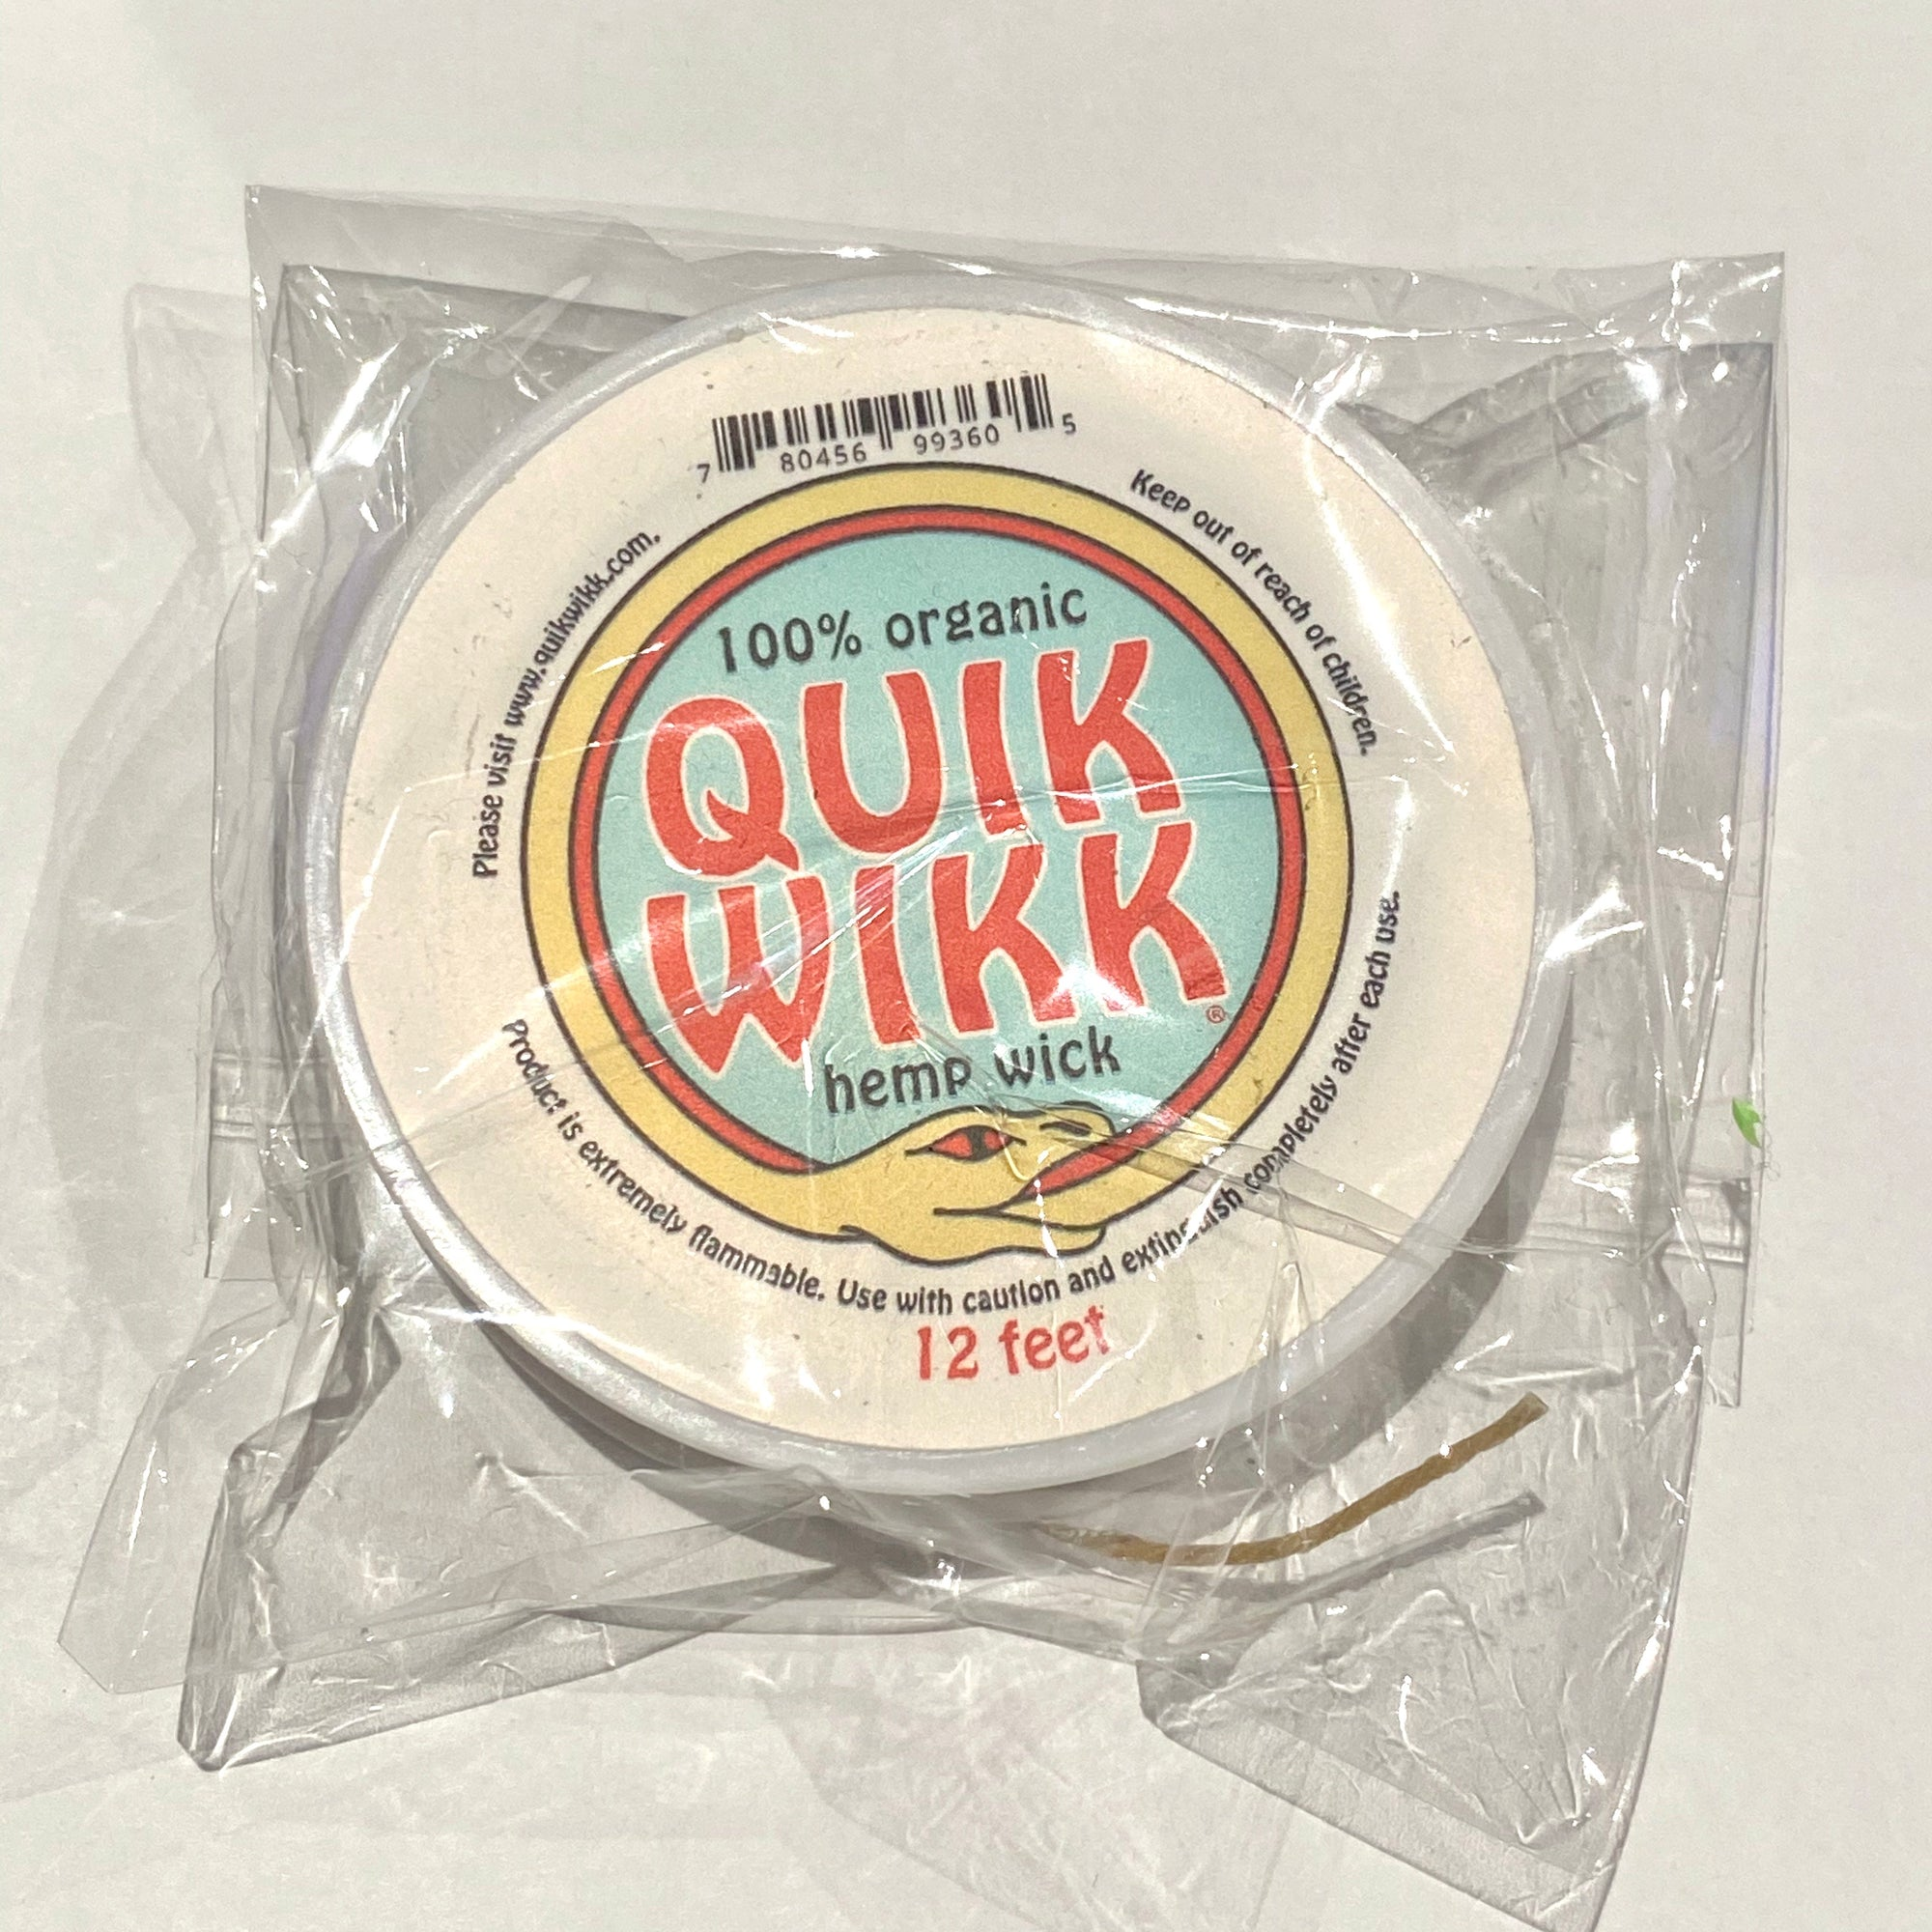 Quik Wikk Hemp Wick Classic Spool (12ft)